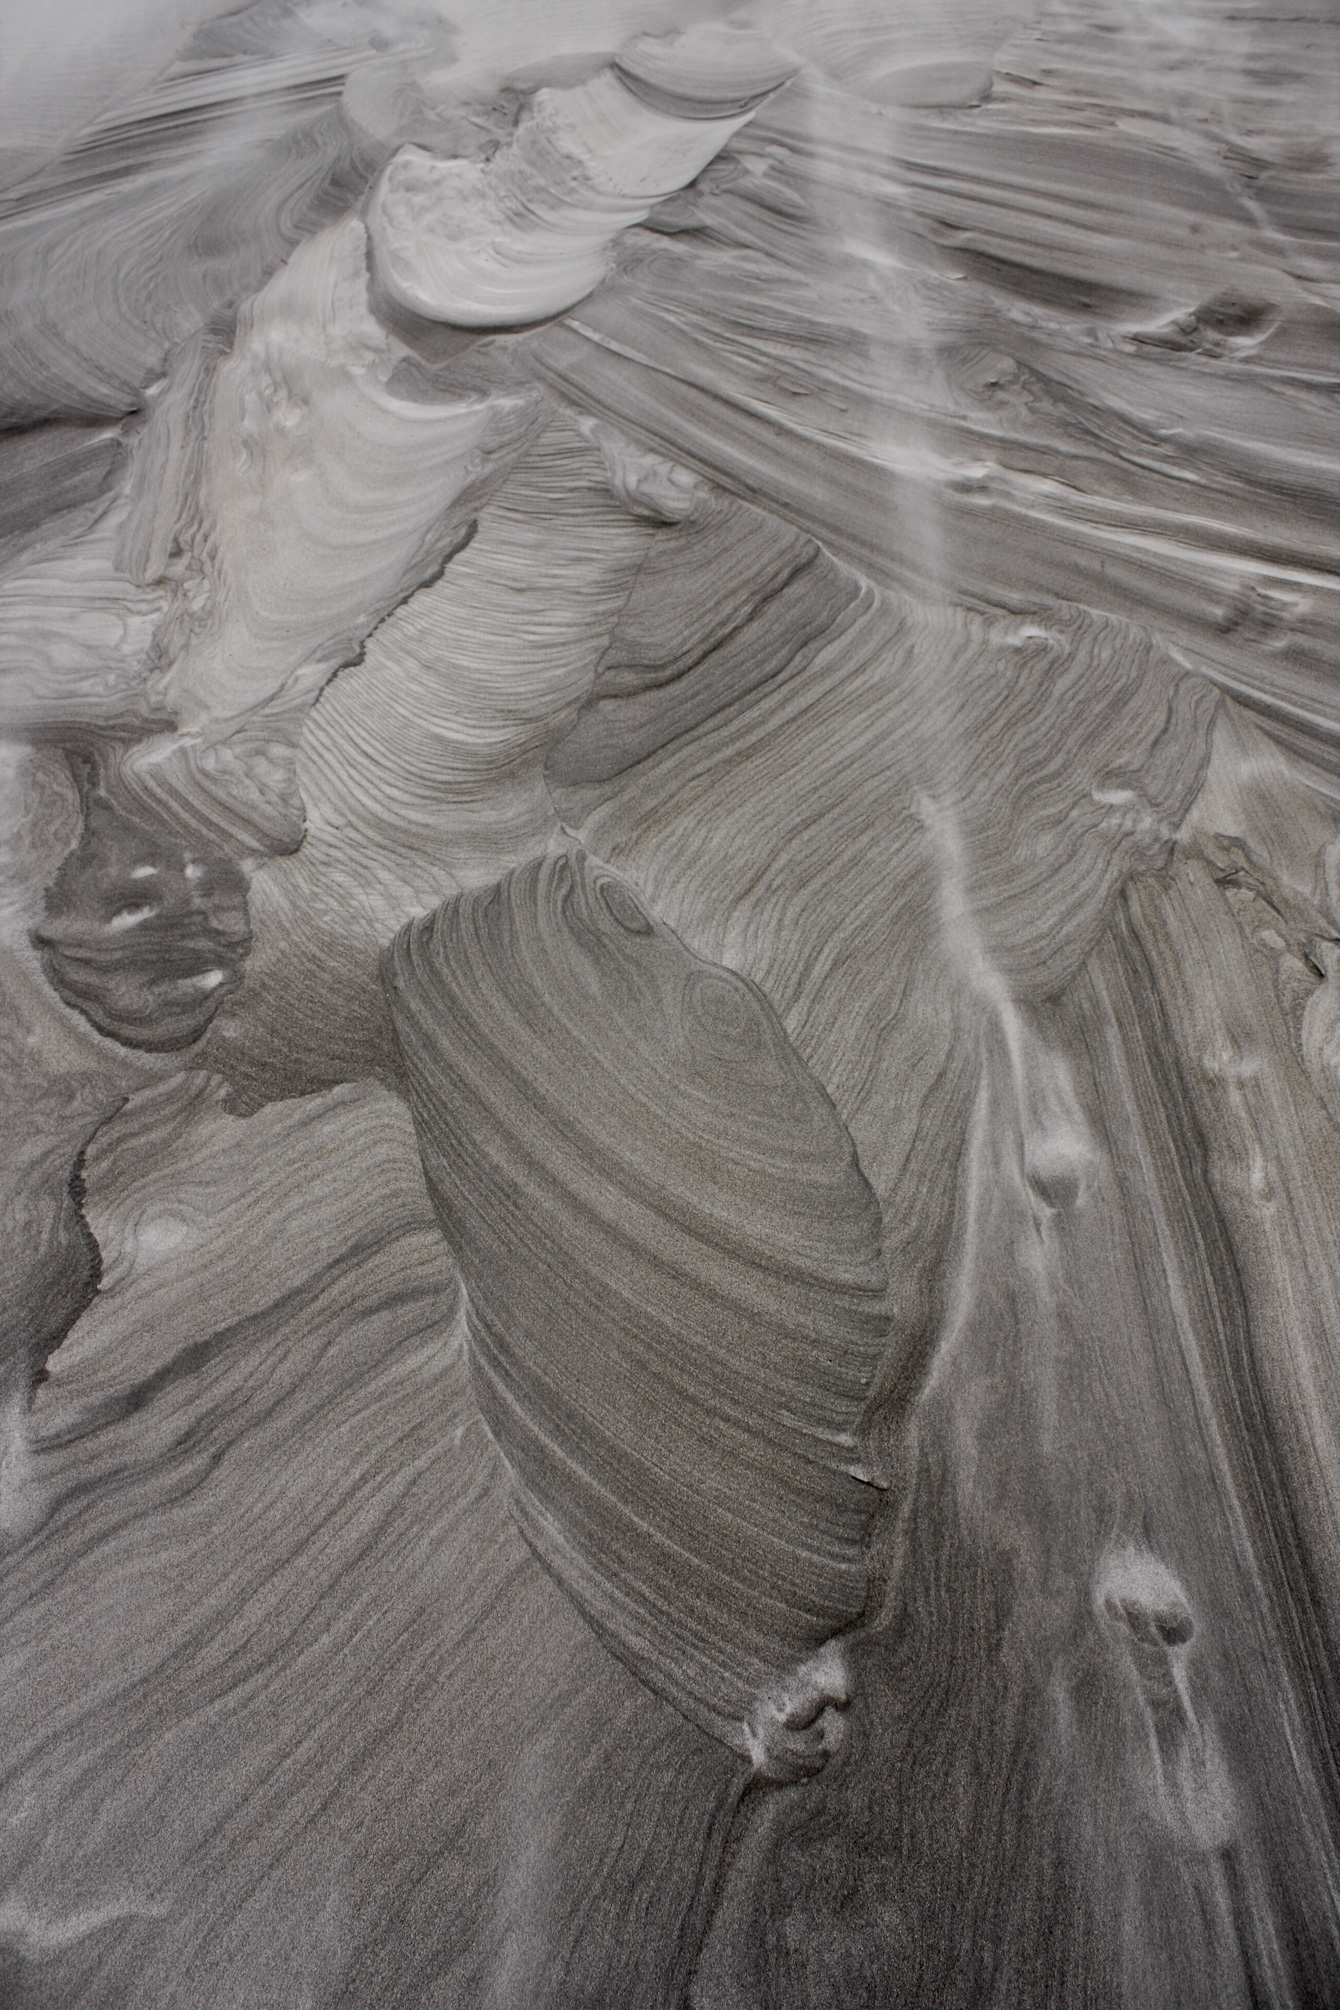 wind-black-sand-patterns-nz-beach